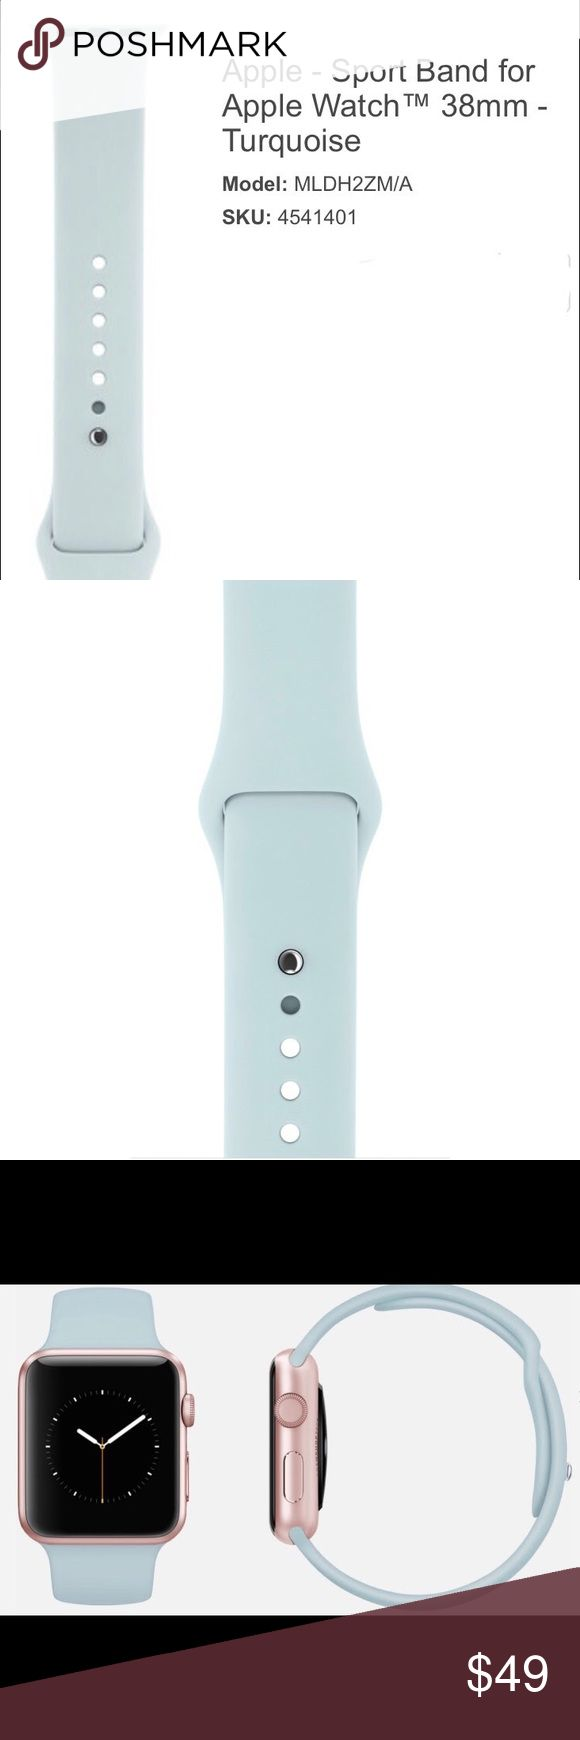 38mm Genuine Apple Watch Turquoise Sport Band Last picture in deck is for visual purposes only as the item for being sold through this listing is NOT an Apple Watch, but is ONLY an Apple Watch Sport Band.  Custom high-performance fluoroelastomer makes the Sport Band durable and strong, yet surprisingly soft.  Smooth, dense material drapes elegantly around your wrist.  Innovative pin-and-tuck closure ensures a clean fit.  Bands fit 130-200mm wrists.  Apple Watch™ is a trademark of Apple Inc…